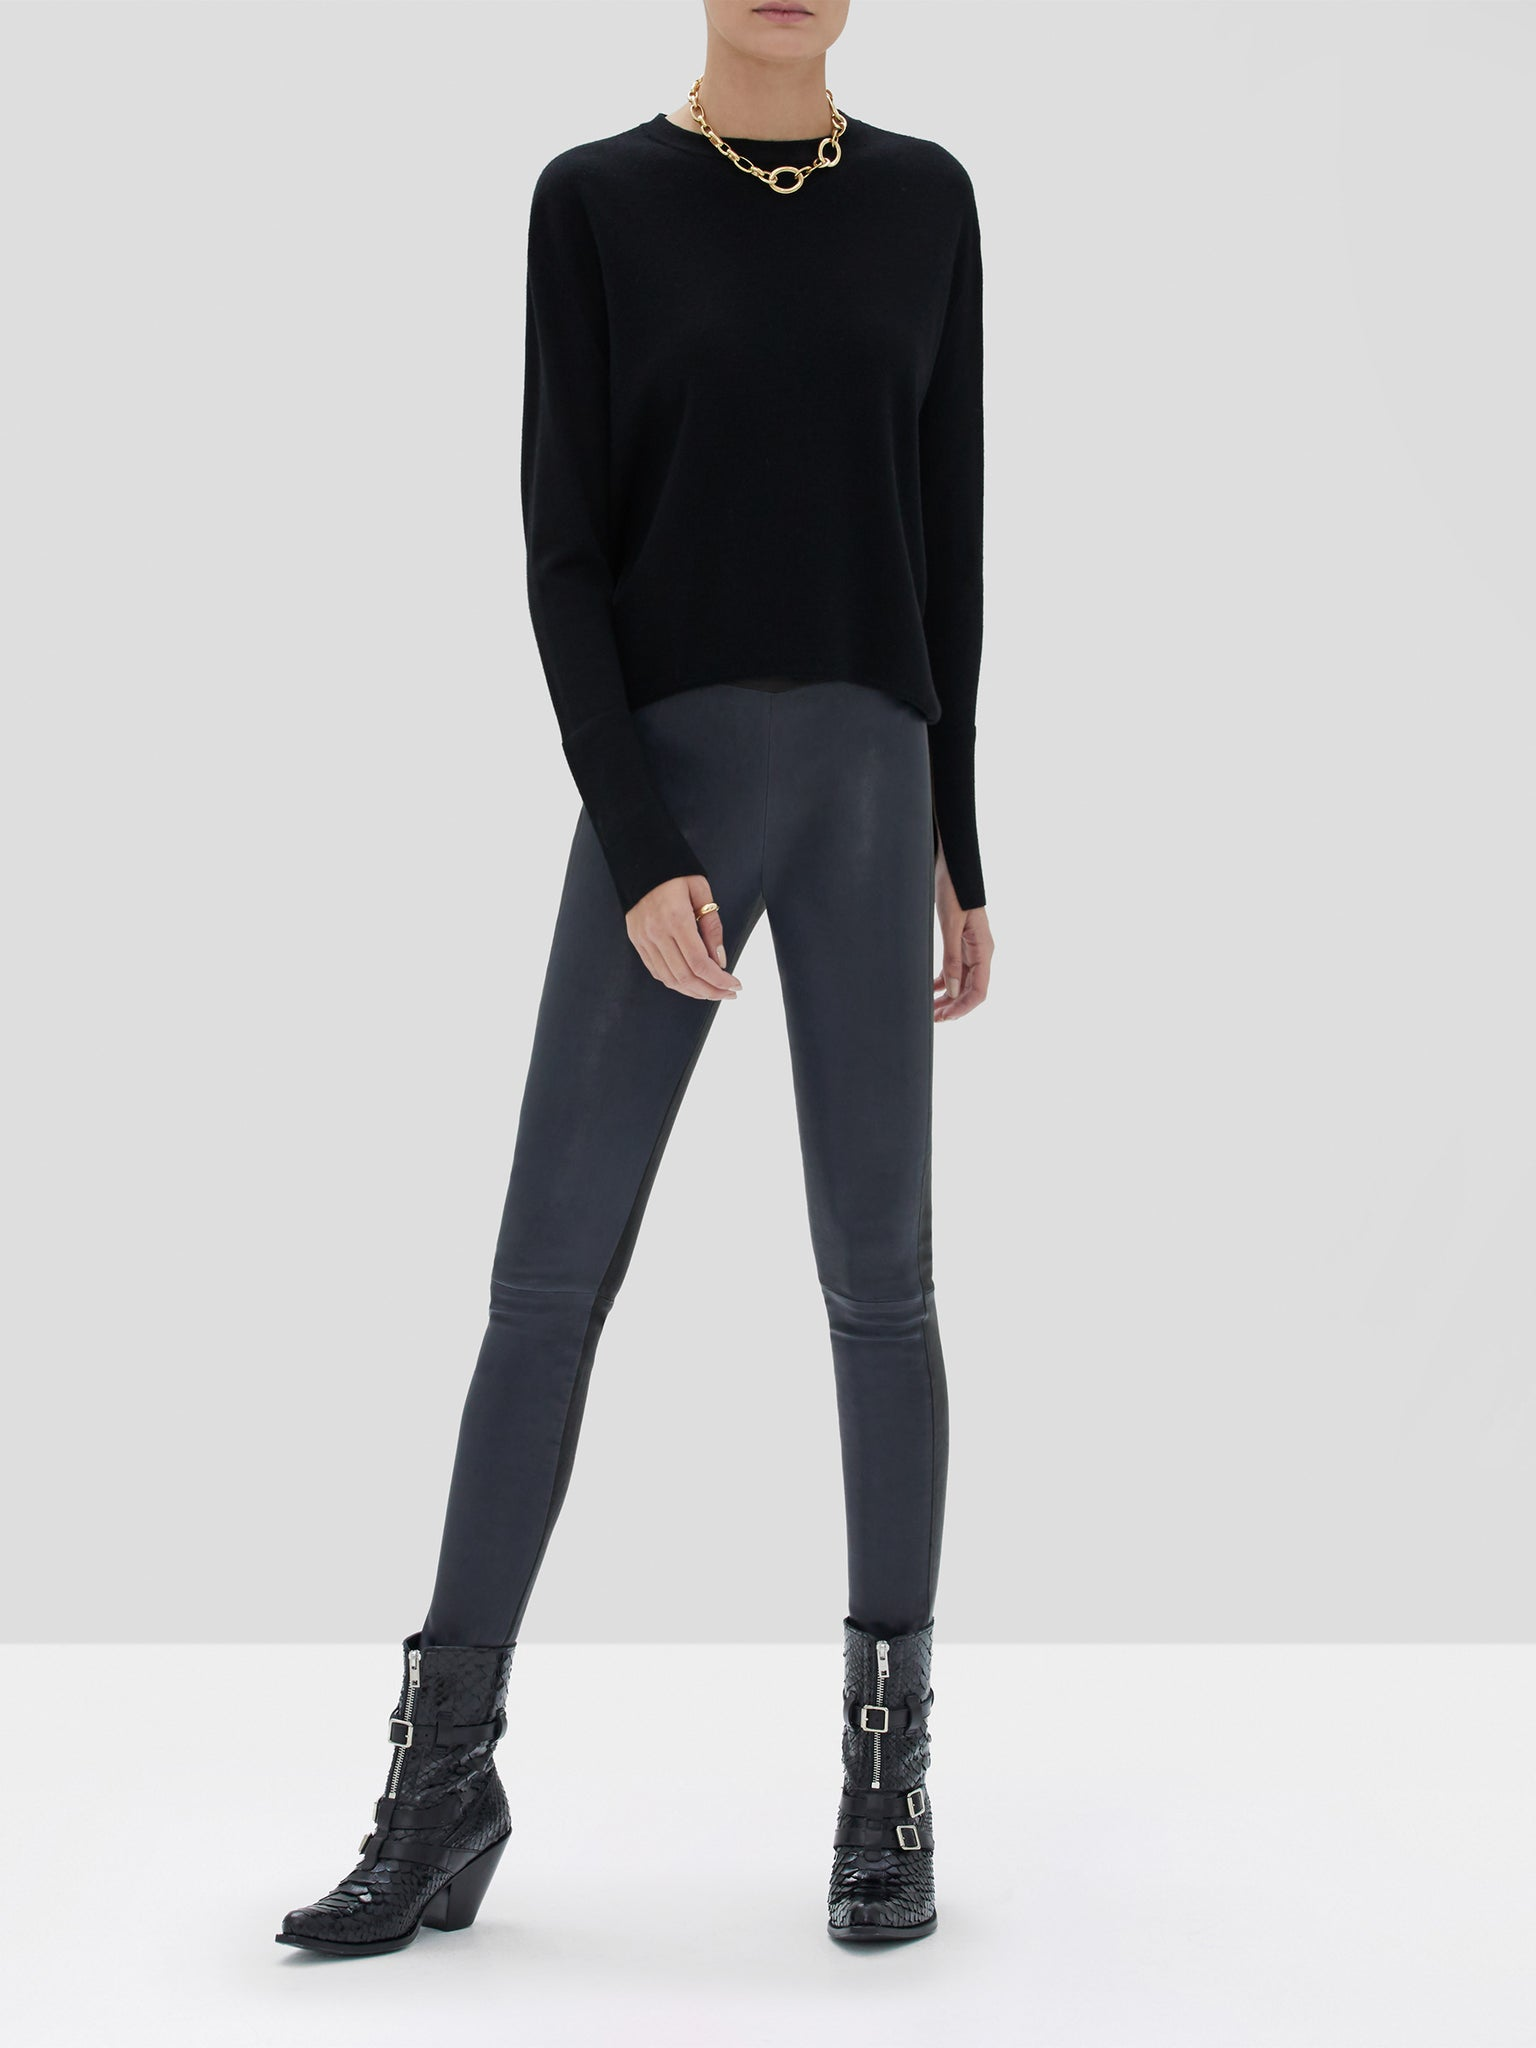 Alexis Katiana Sweater in Black Boyd Leather Pant in Blue Black from the Fall Winter 2019 Collection